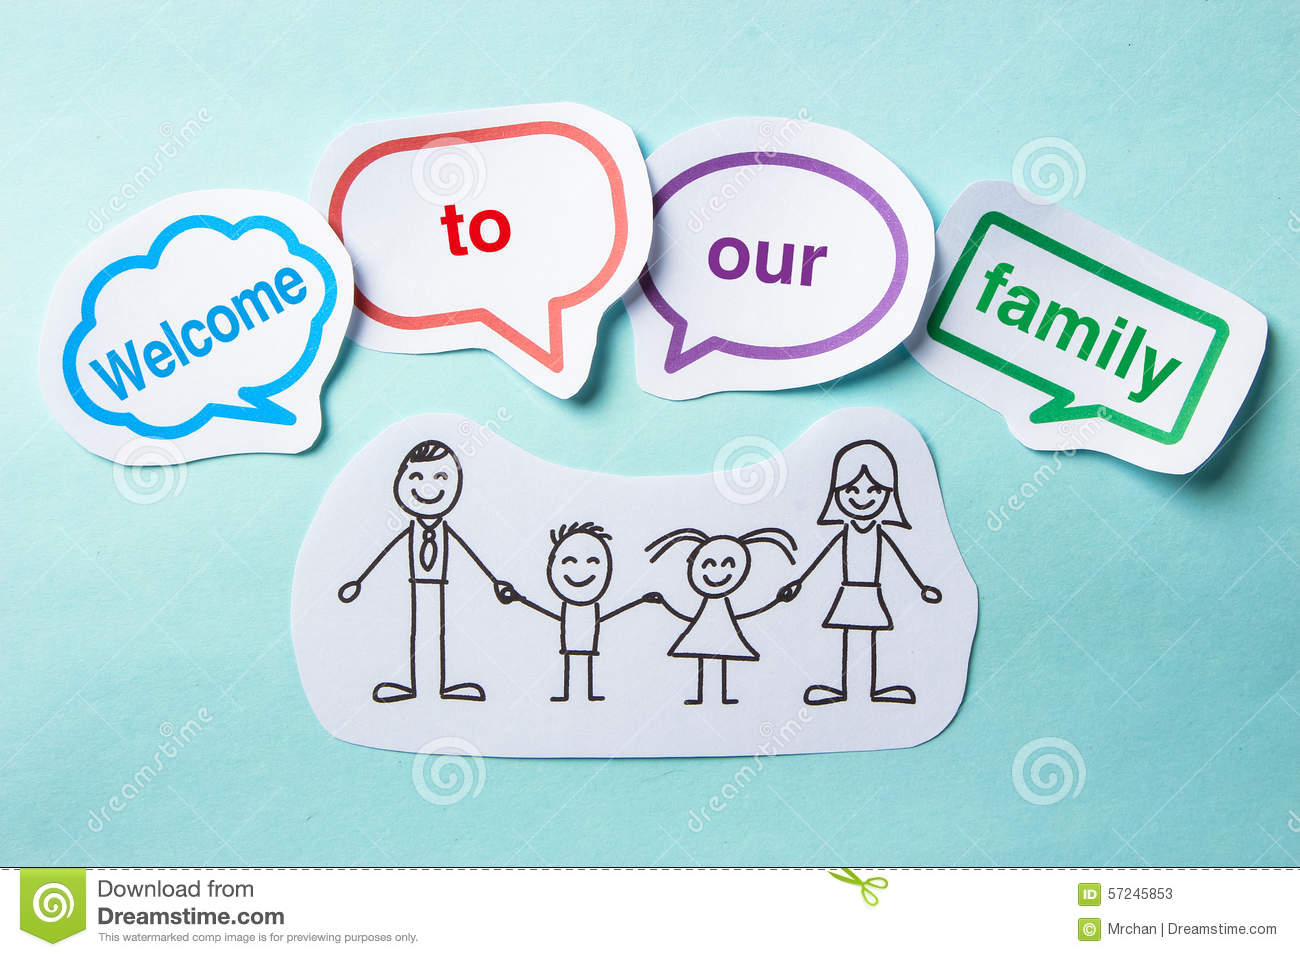 welcome to our family speech